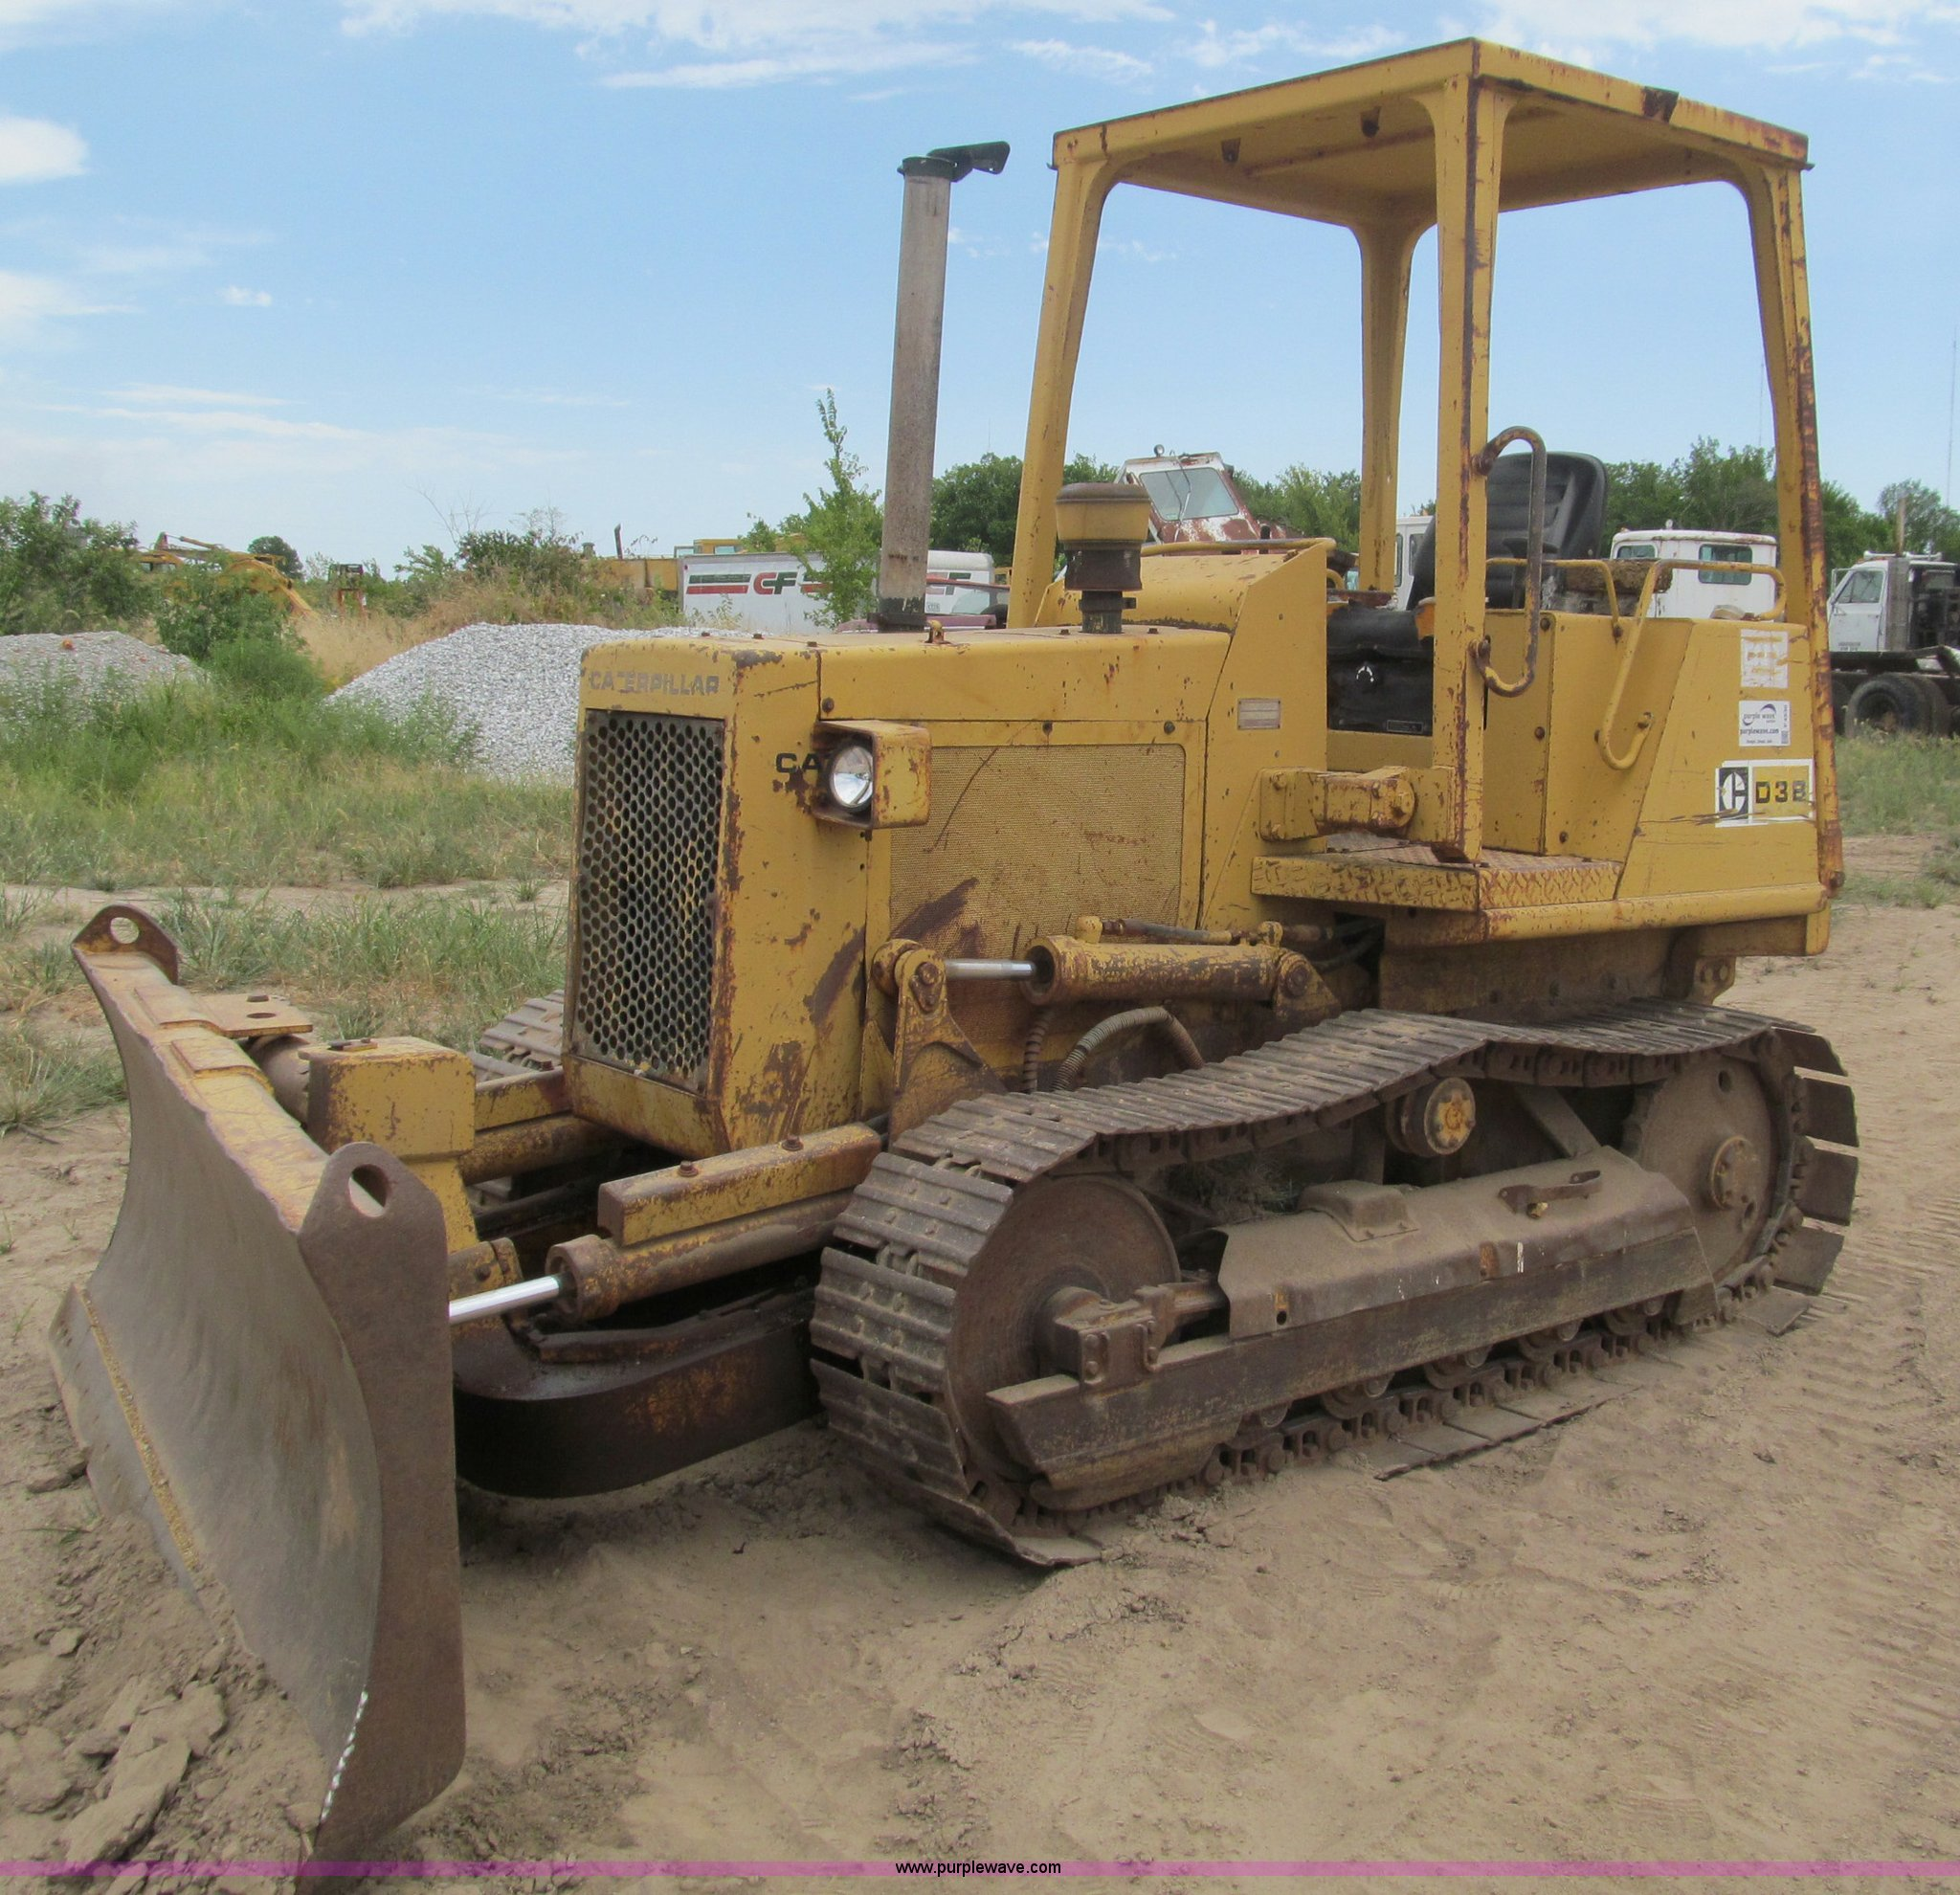 1985 Caterpillar D3B-Z dozer | Item F4536 | SOLD! Thursday A